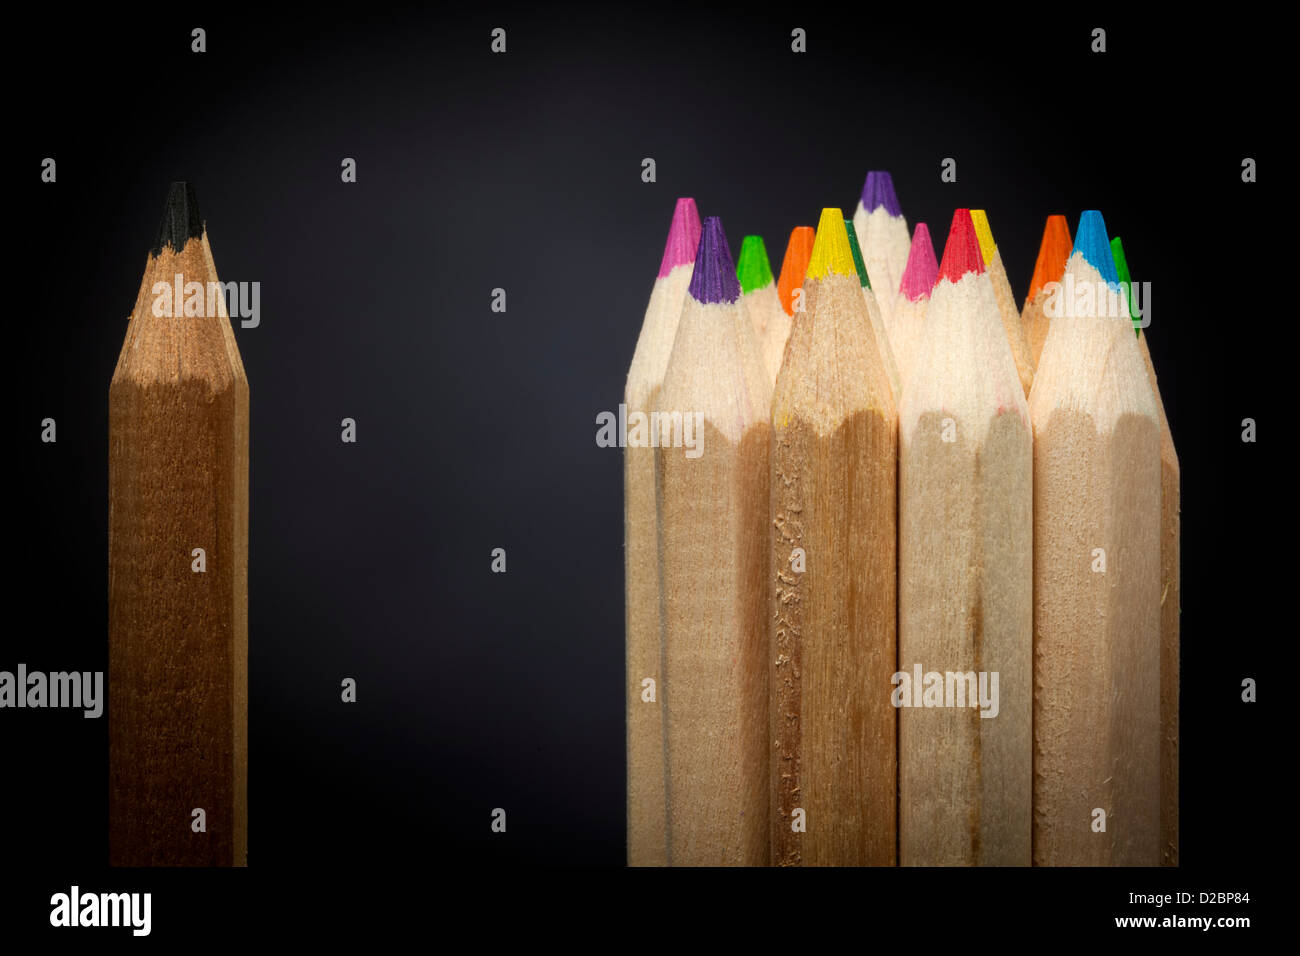 Isolation concept - black pencil standing apart from group of colored pencils - Stock Image